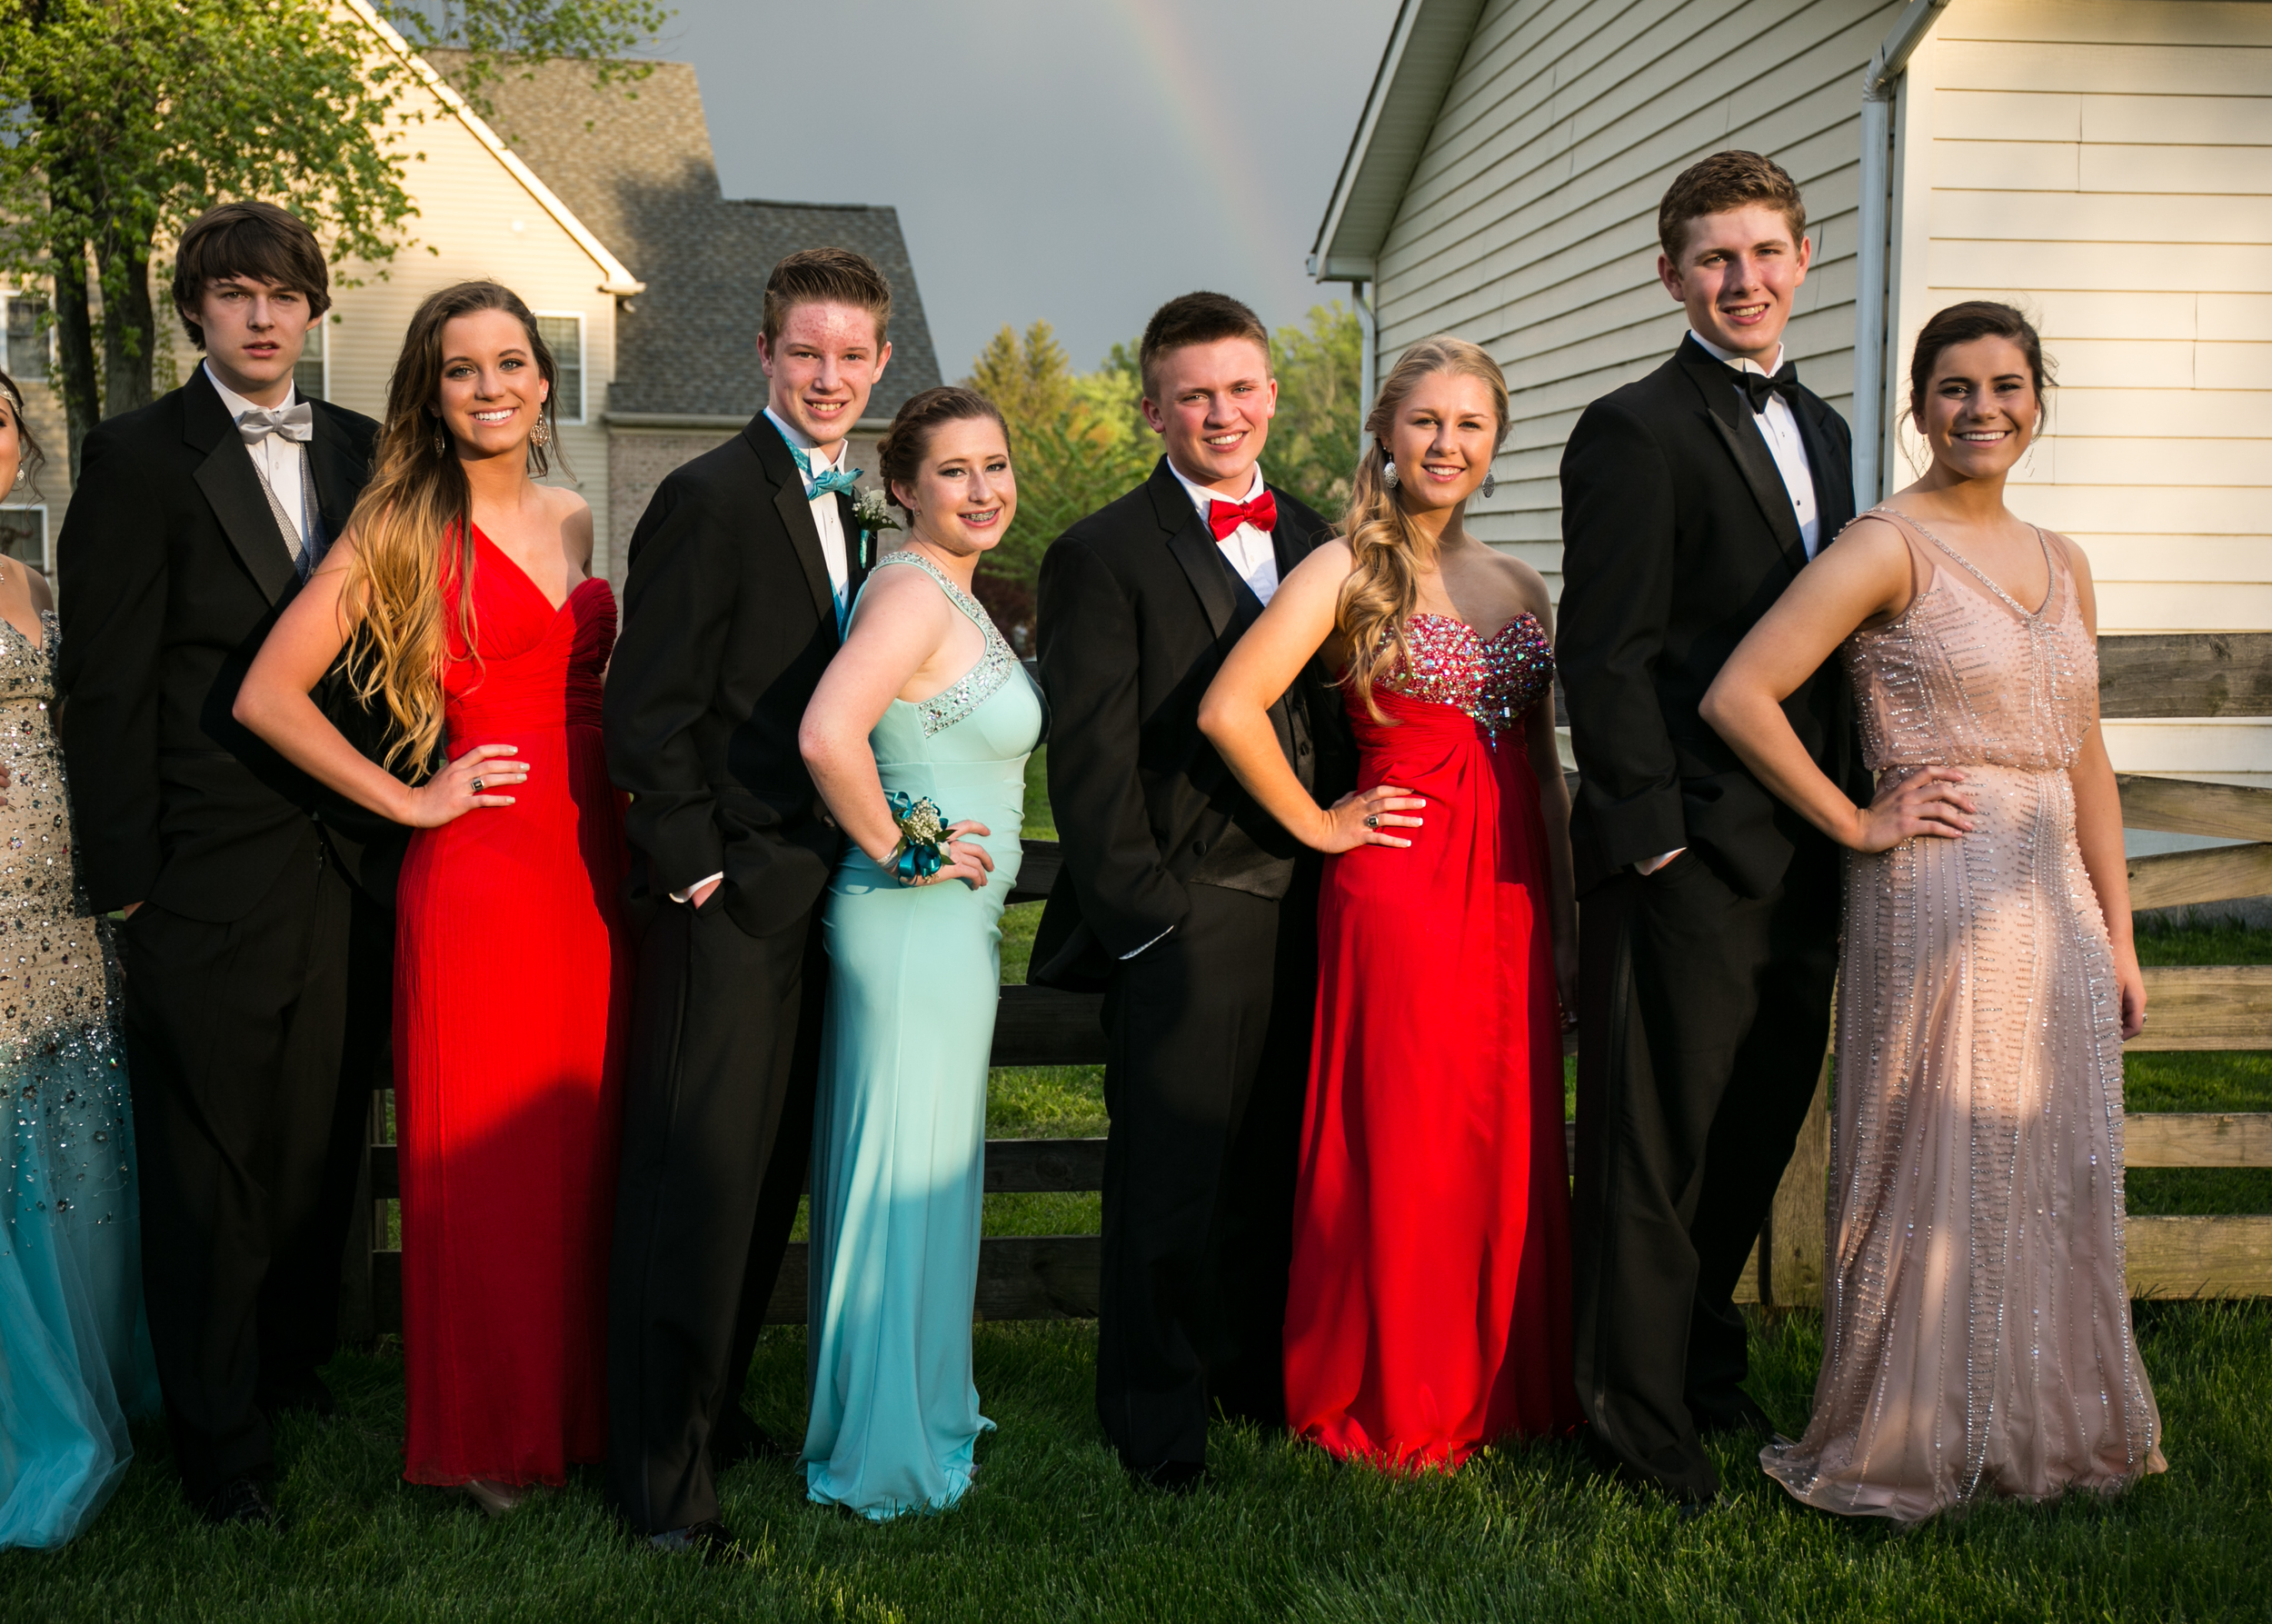 Mount-De-Sales-Pre-Prom-May-2014-50.jpg